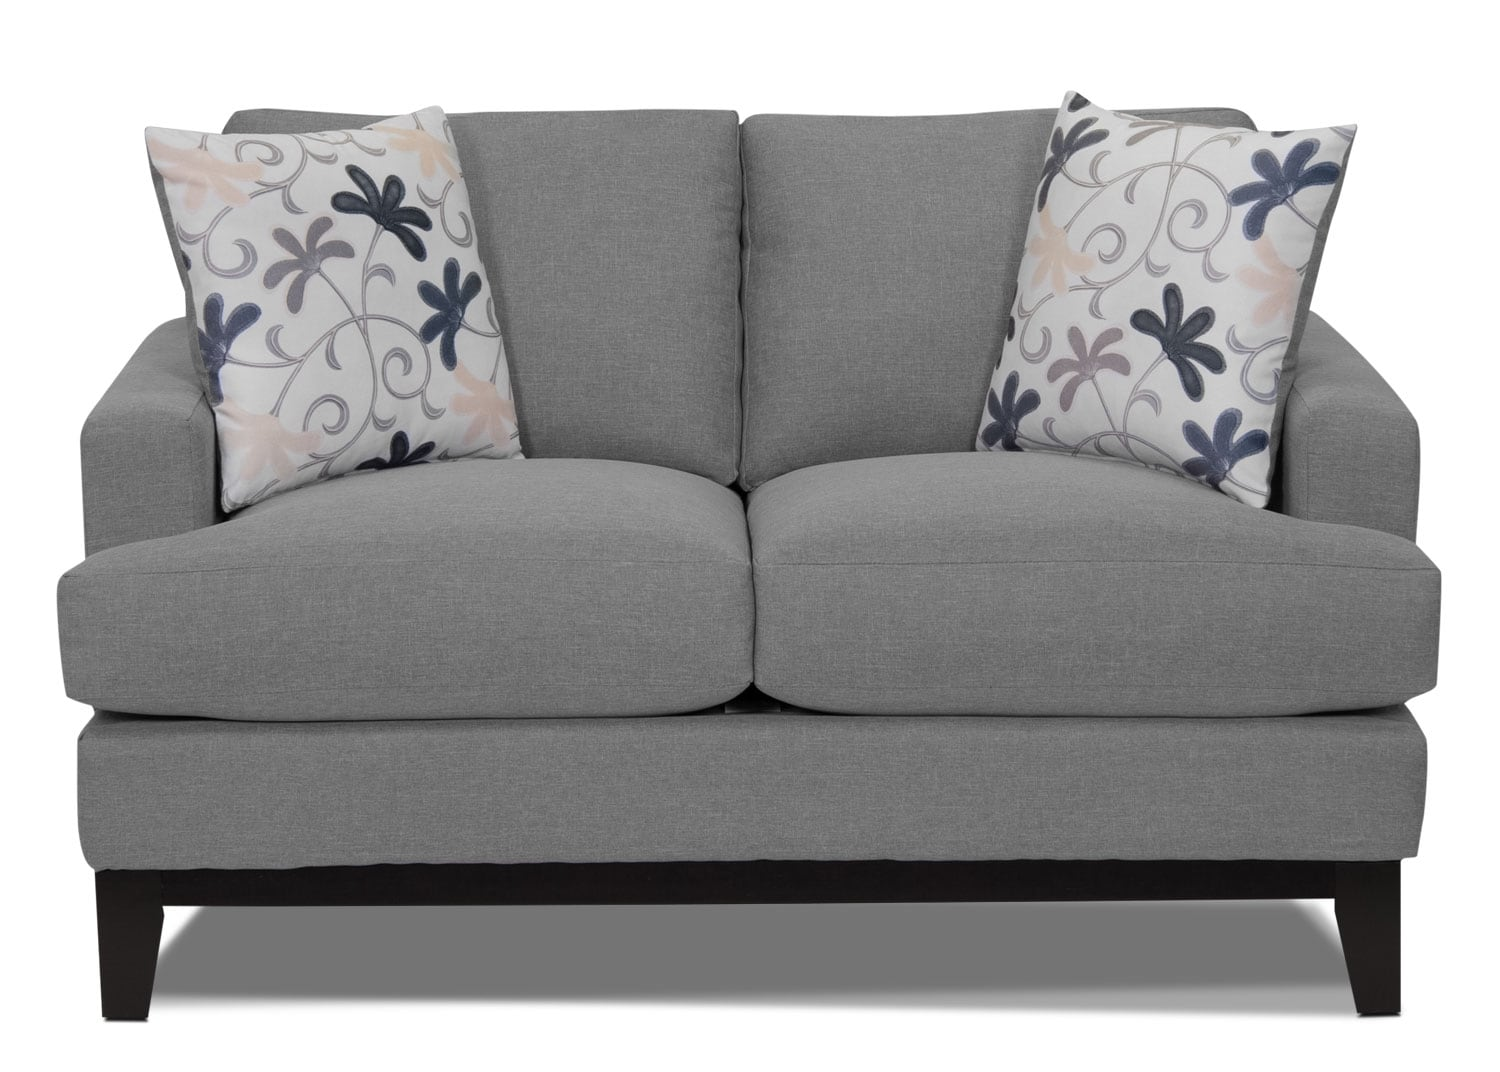 Living Room Furniture - Everly Linen-Look Fabric Loveseat - Heather Grey